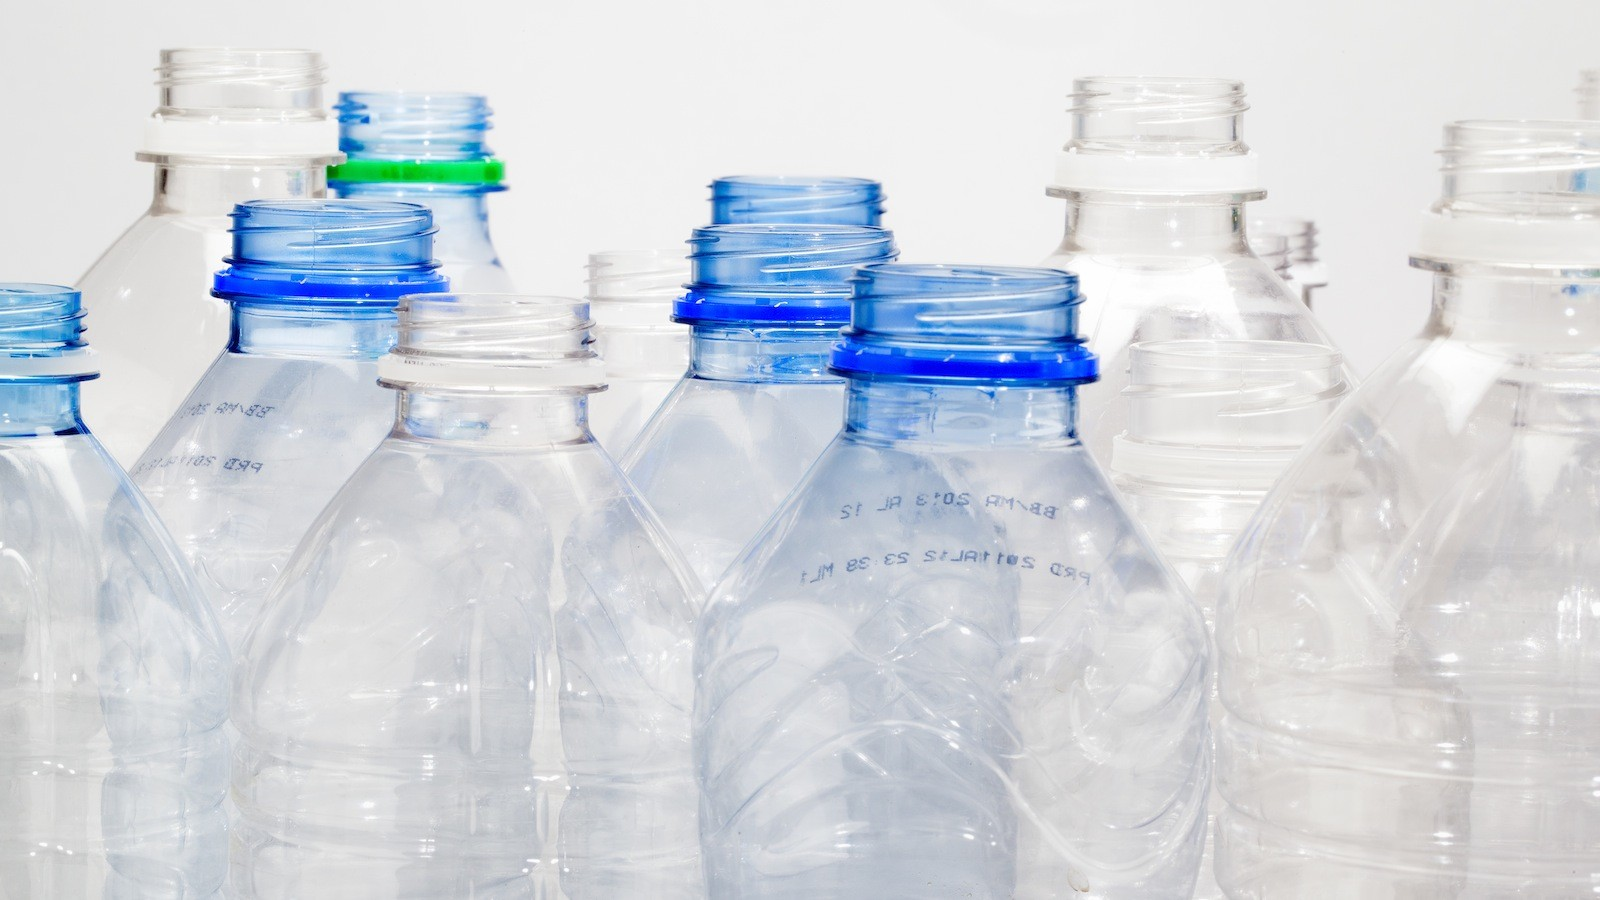 49,807 and counting: Brock initiative helps reduce plastic ...